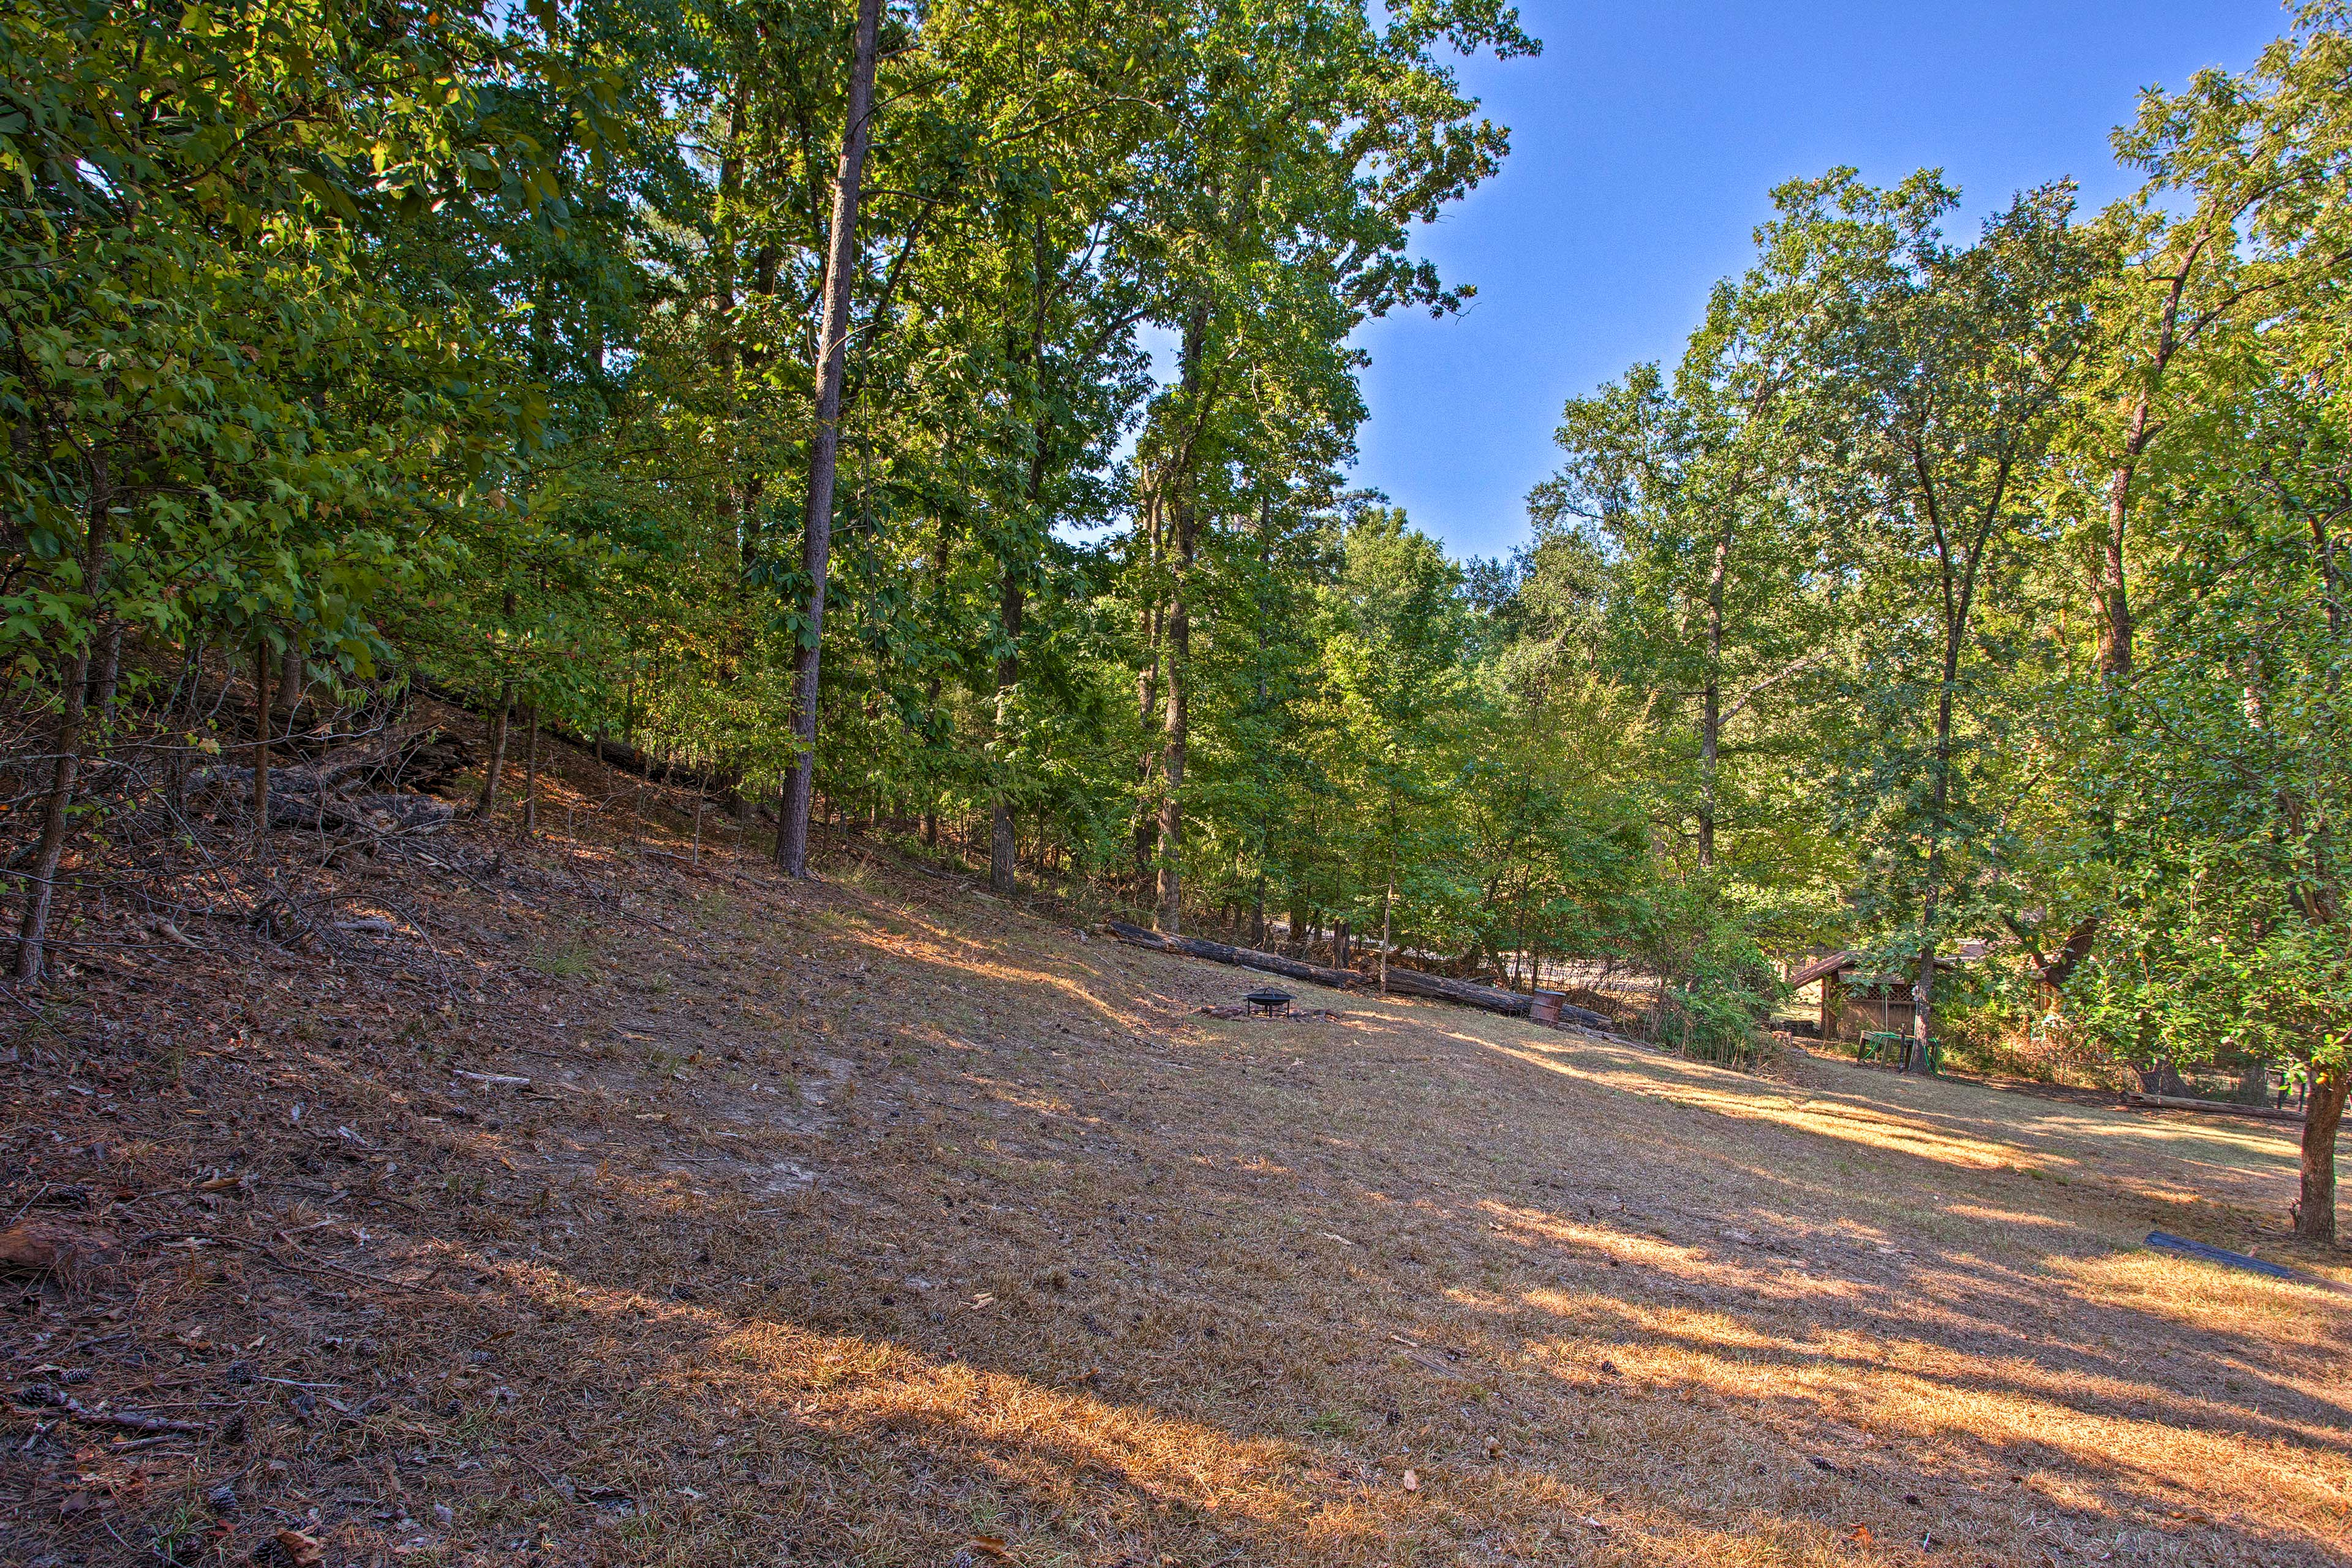 Revel in the beauty of nature while surrounded by towering trees & open space.